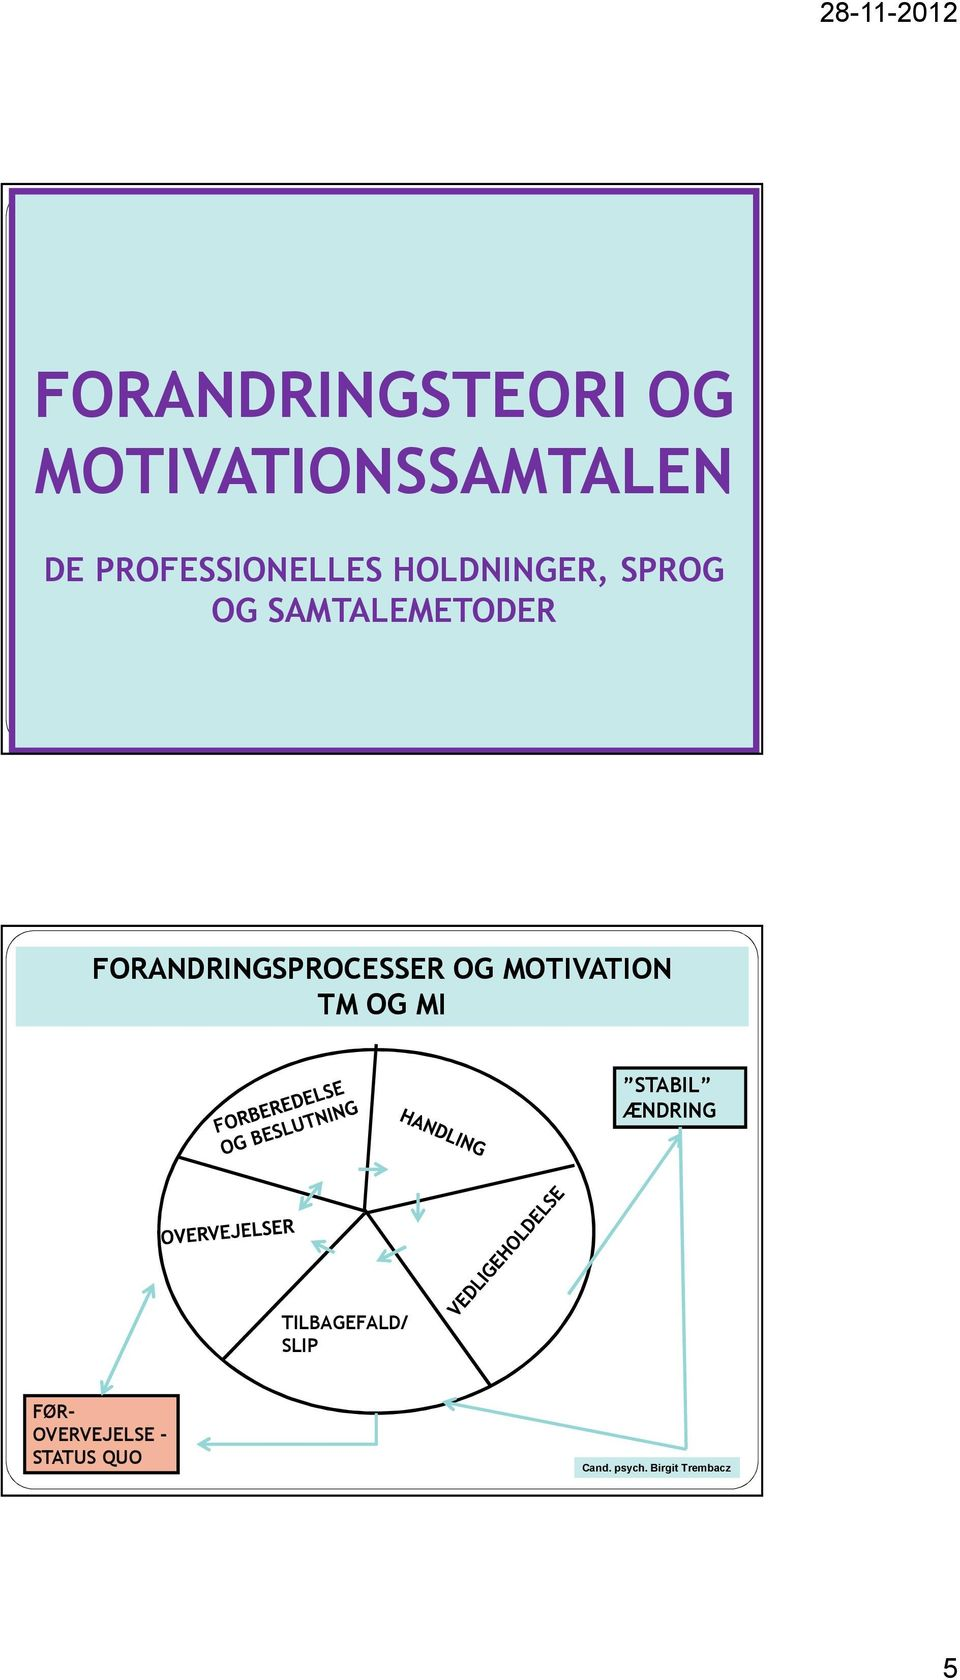 SAMTALEMETODER FORANDRINGSPROCESSER OG MOTIVATION